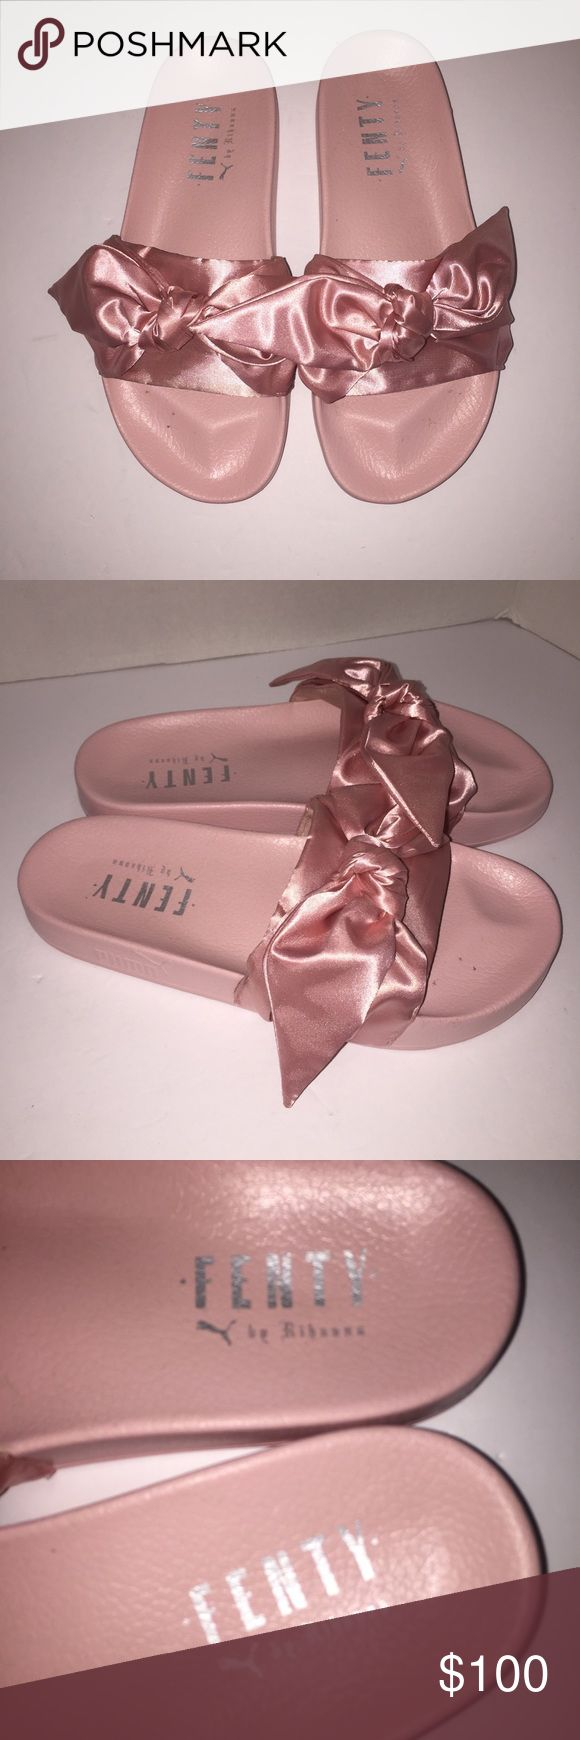 Puma Rihanna Fenty Pink Spa Bow Slides sz 9.5 Worn before no box sorry no trades send me a offer Puma Shoes Sandals